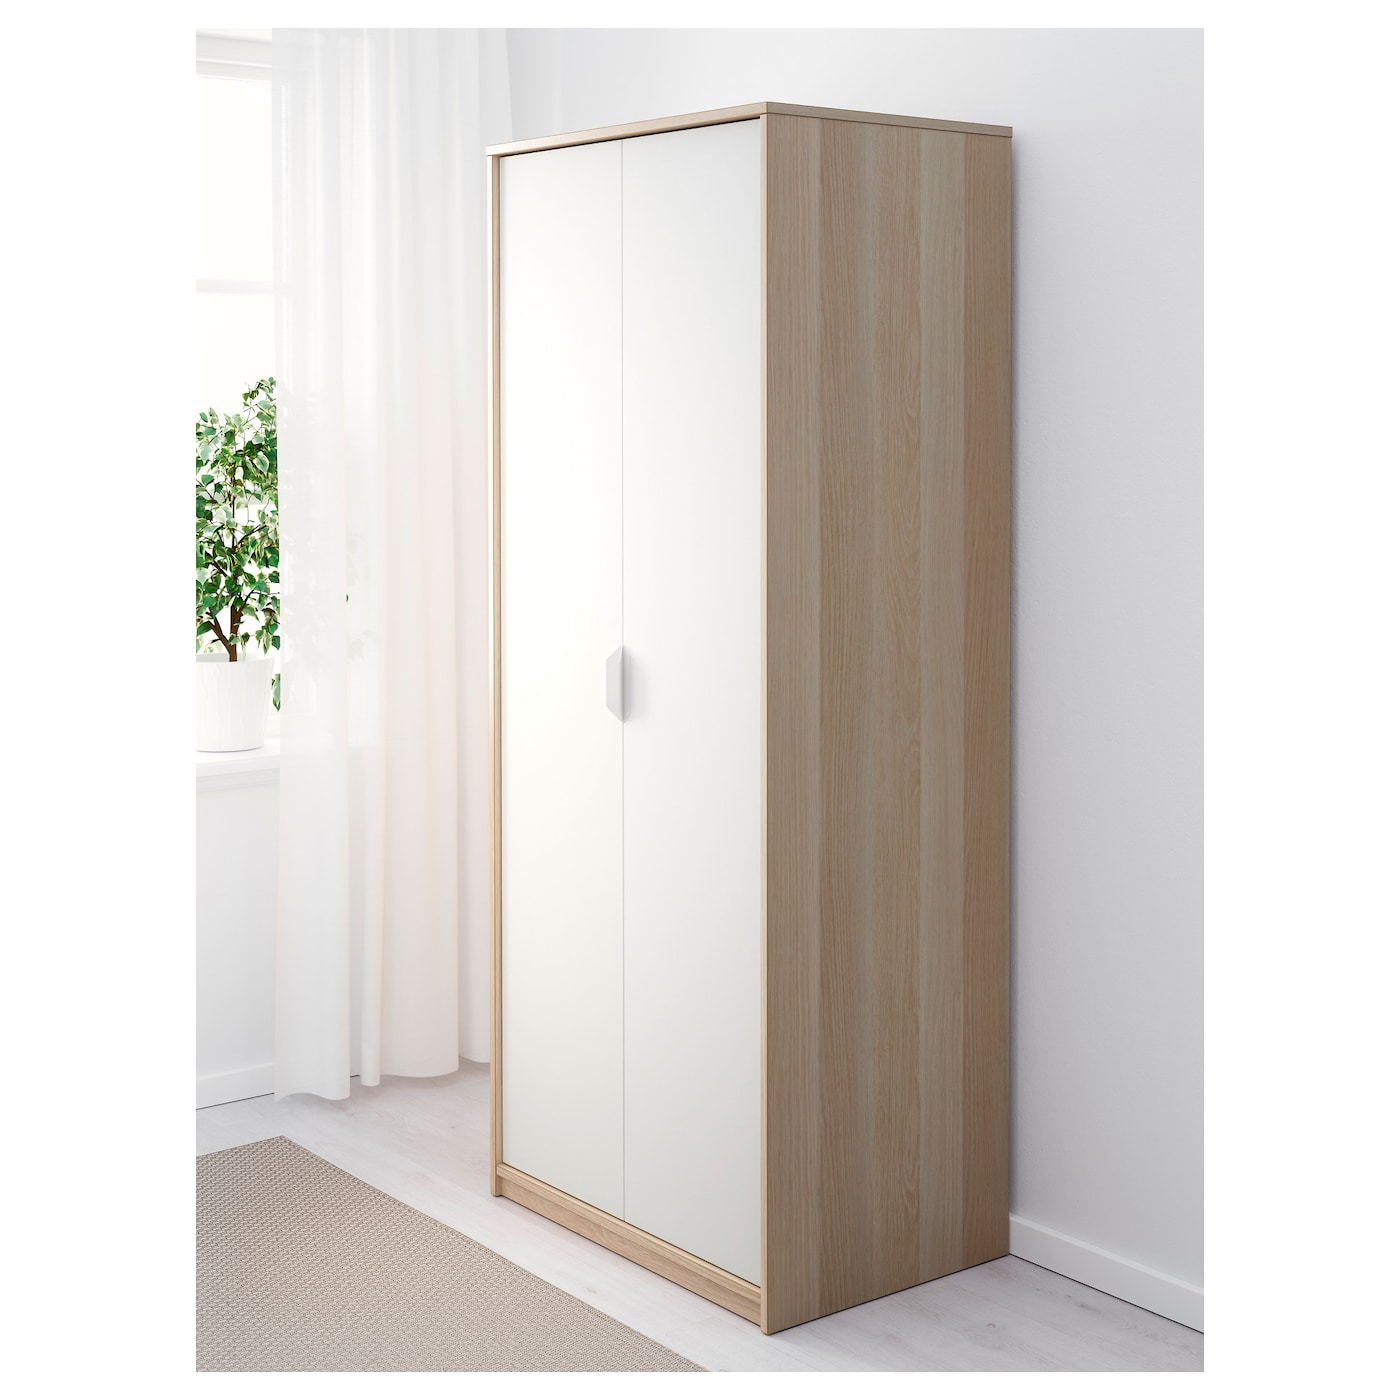 ASKVOLL Wardrobe White Stained Oak Effectwhite Xx Cm IKEA - Ikea wardrobe